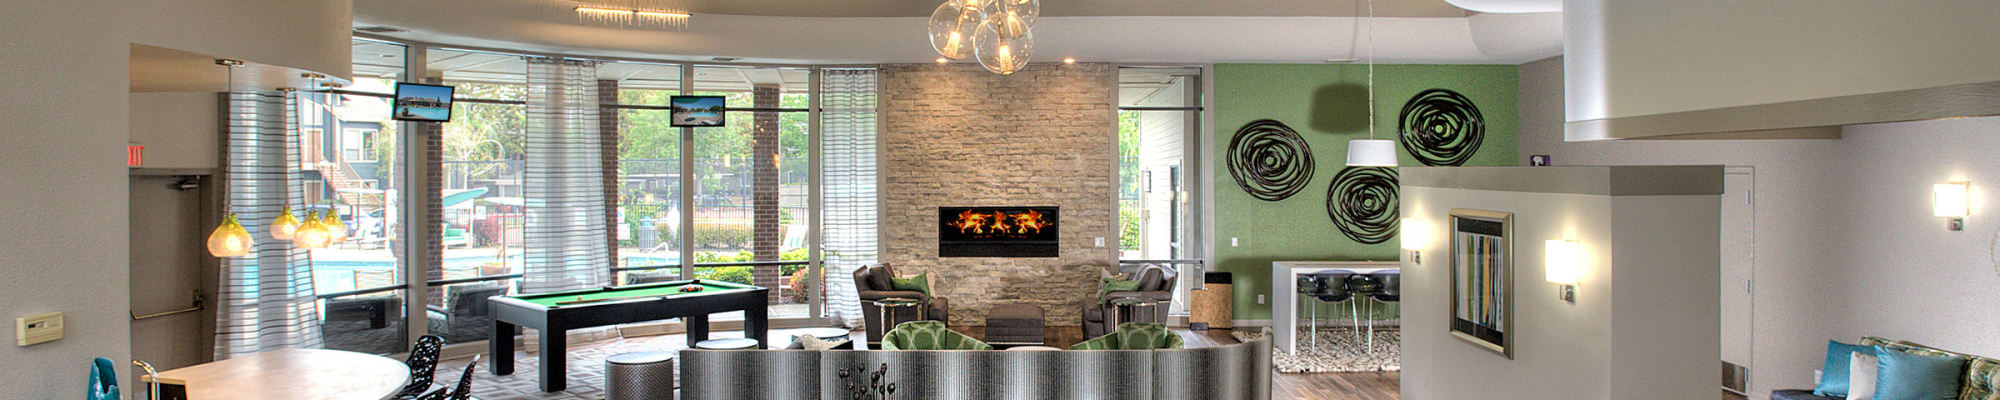 Amenities at Deer Valley Apartment Homes in Roseville, California